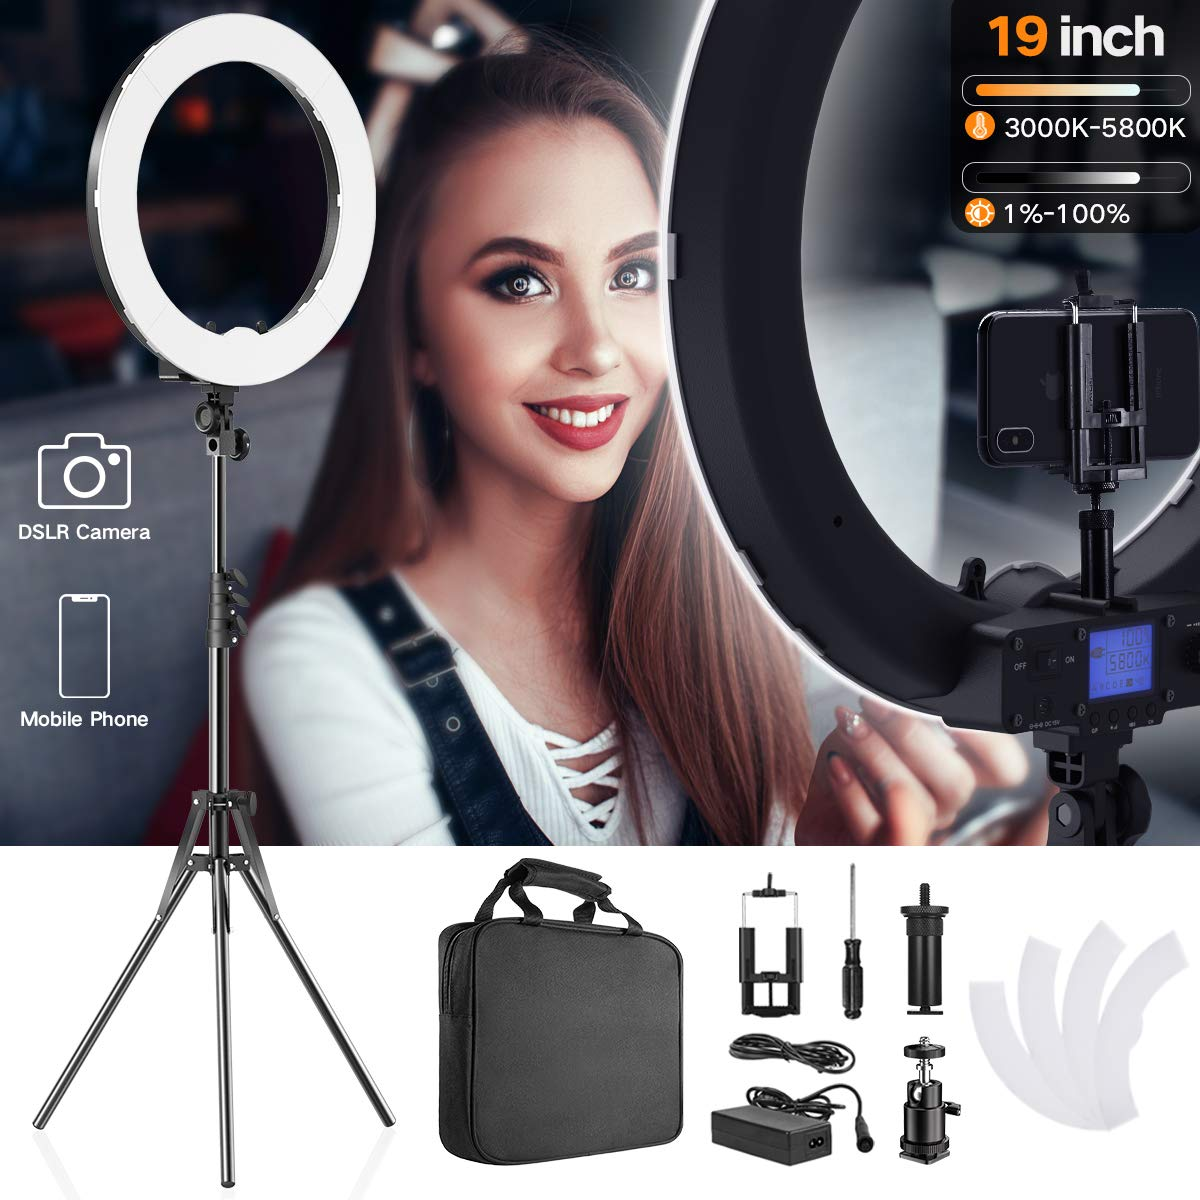 PIXEL 19 Inch Ring Light with Stand, 55W MultiTemp 3000-5800K Dimmable Circle LED Lighting for Selfie Makeup Videos, Built-in 2.4G Receiver w/UL Listed AC Adapter